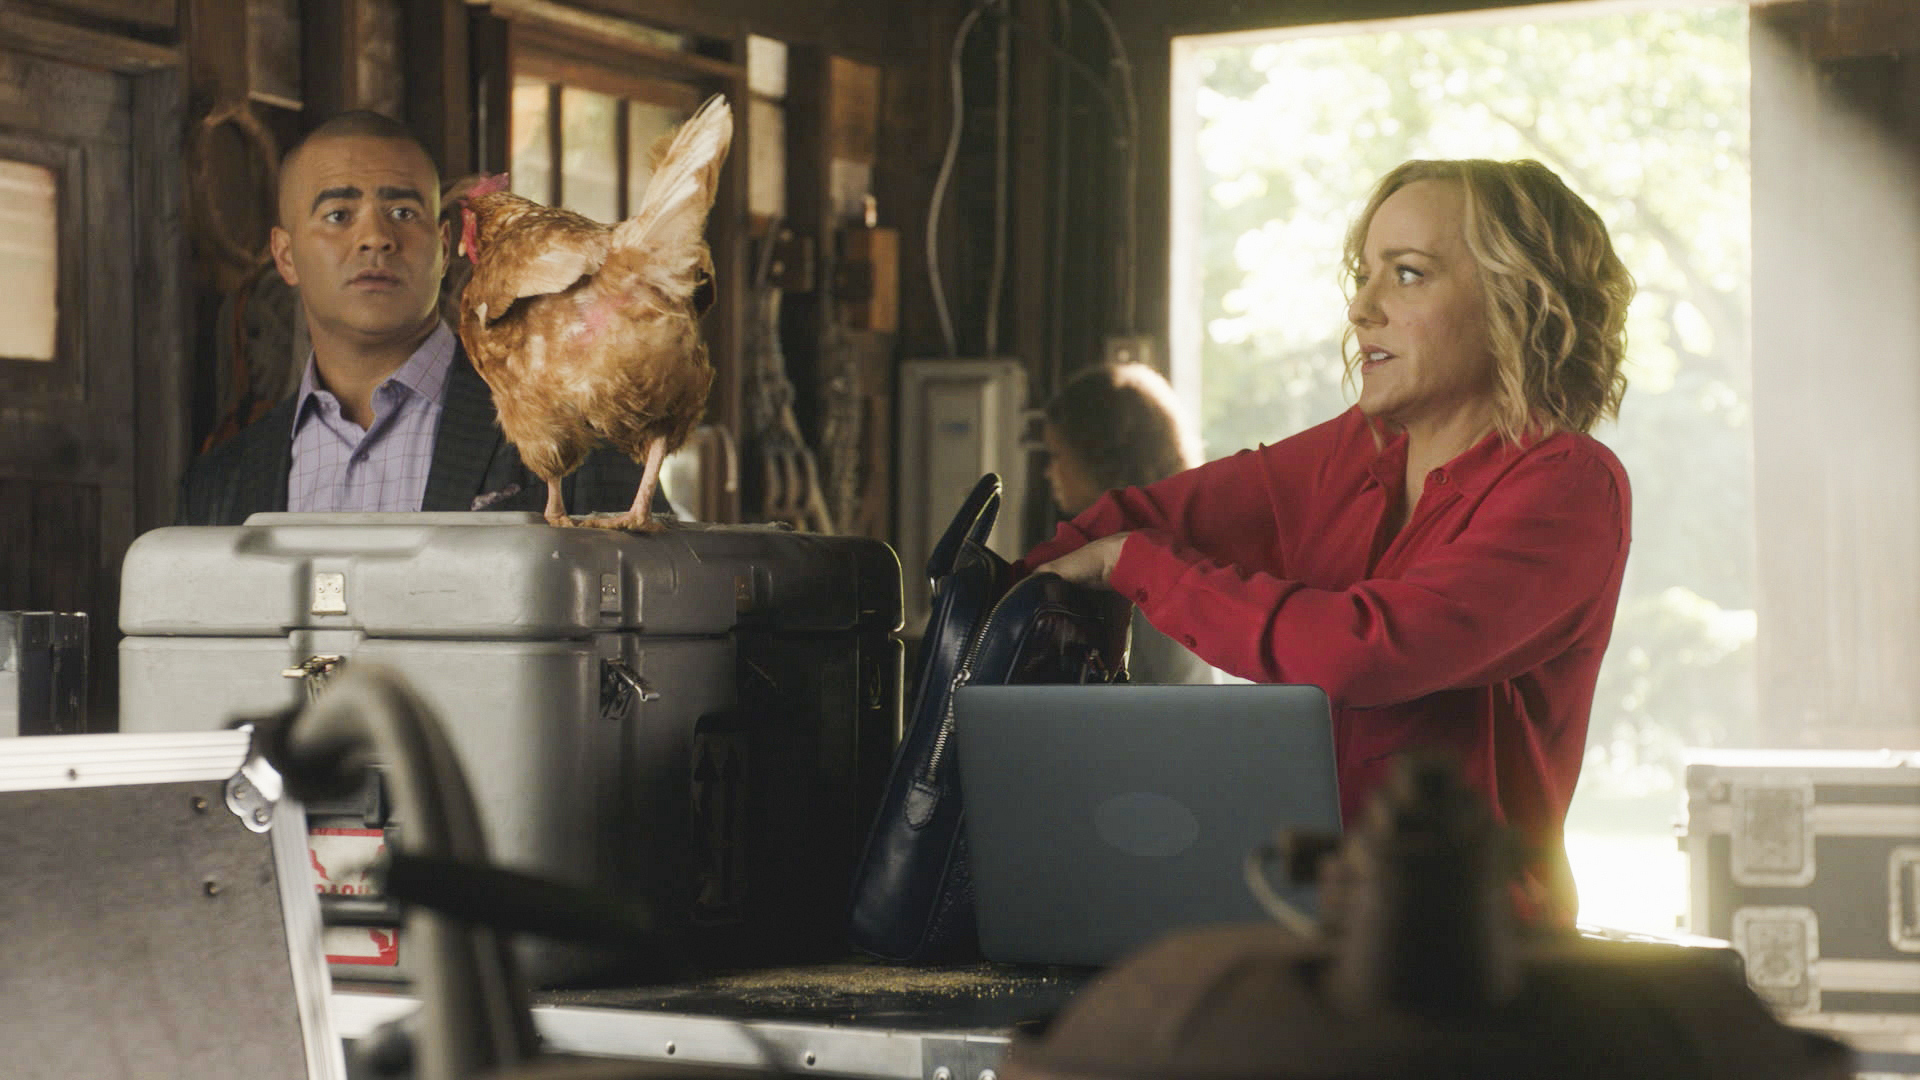 Chunk Palmer and Marissa Morgan meet a friendly fowl in Texas.